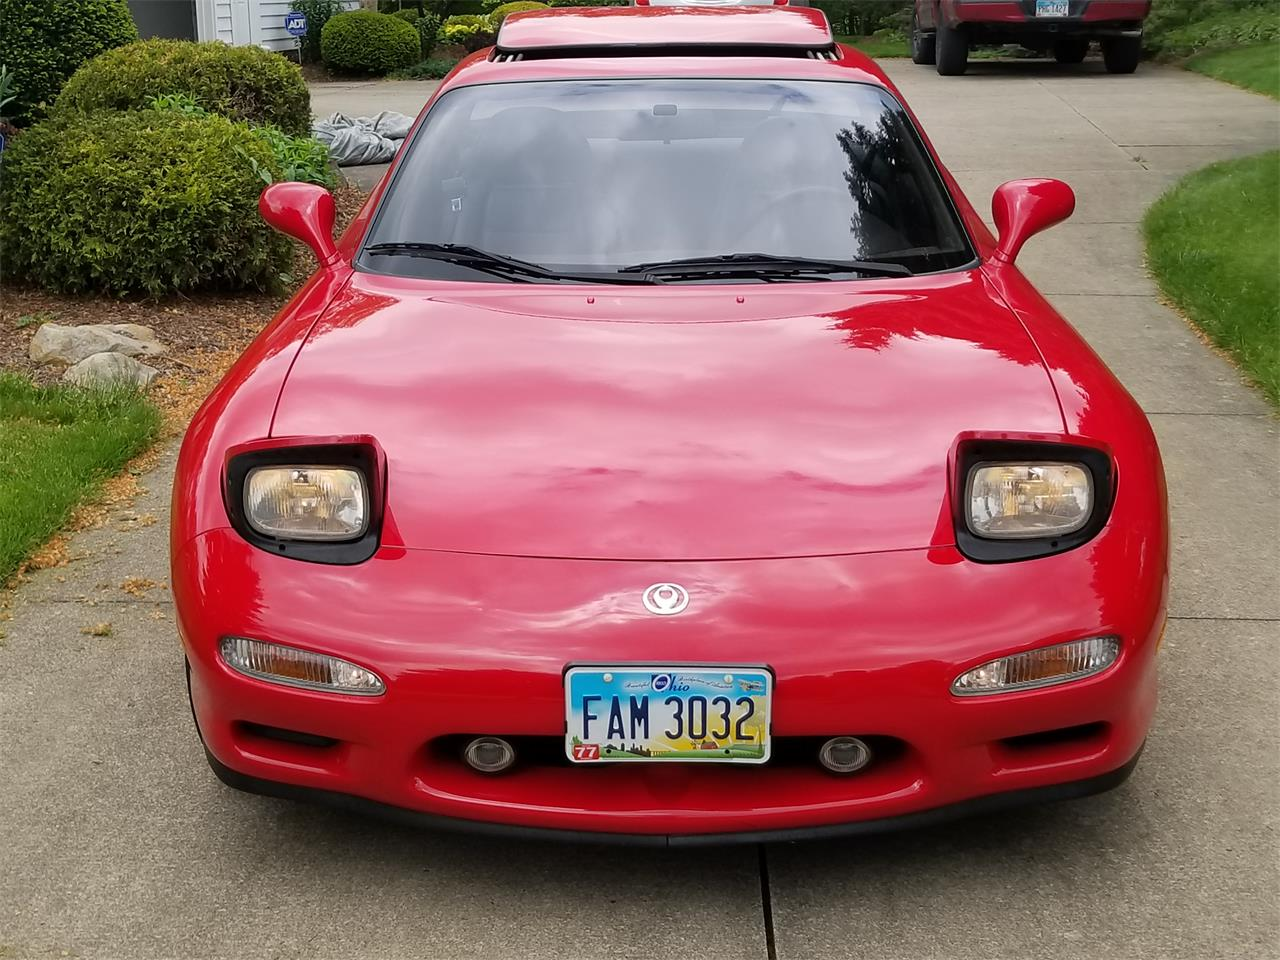 Large Picture of '93 RX-7 located in Ohio - $54,000.00 Offered by a Private Seller - NICV